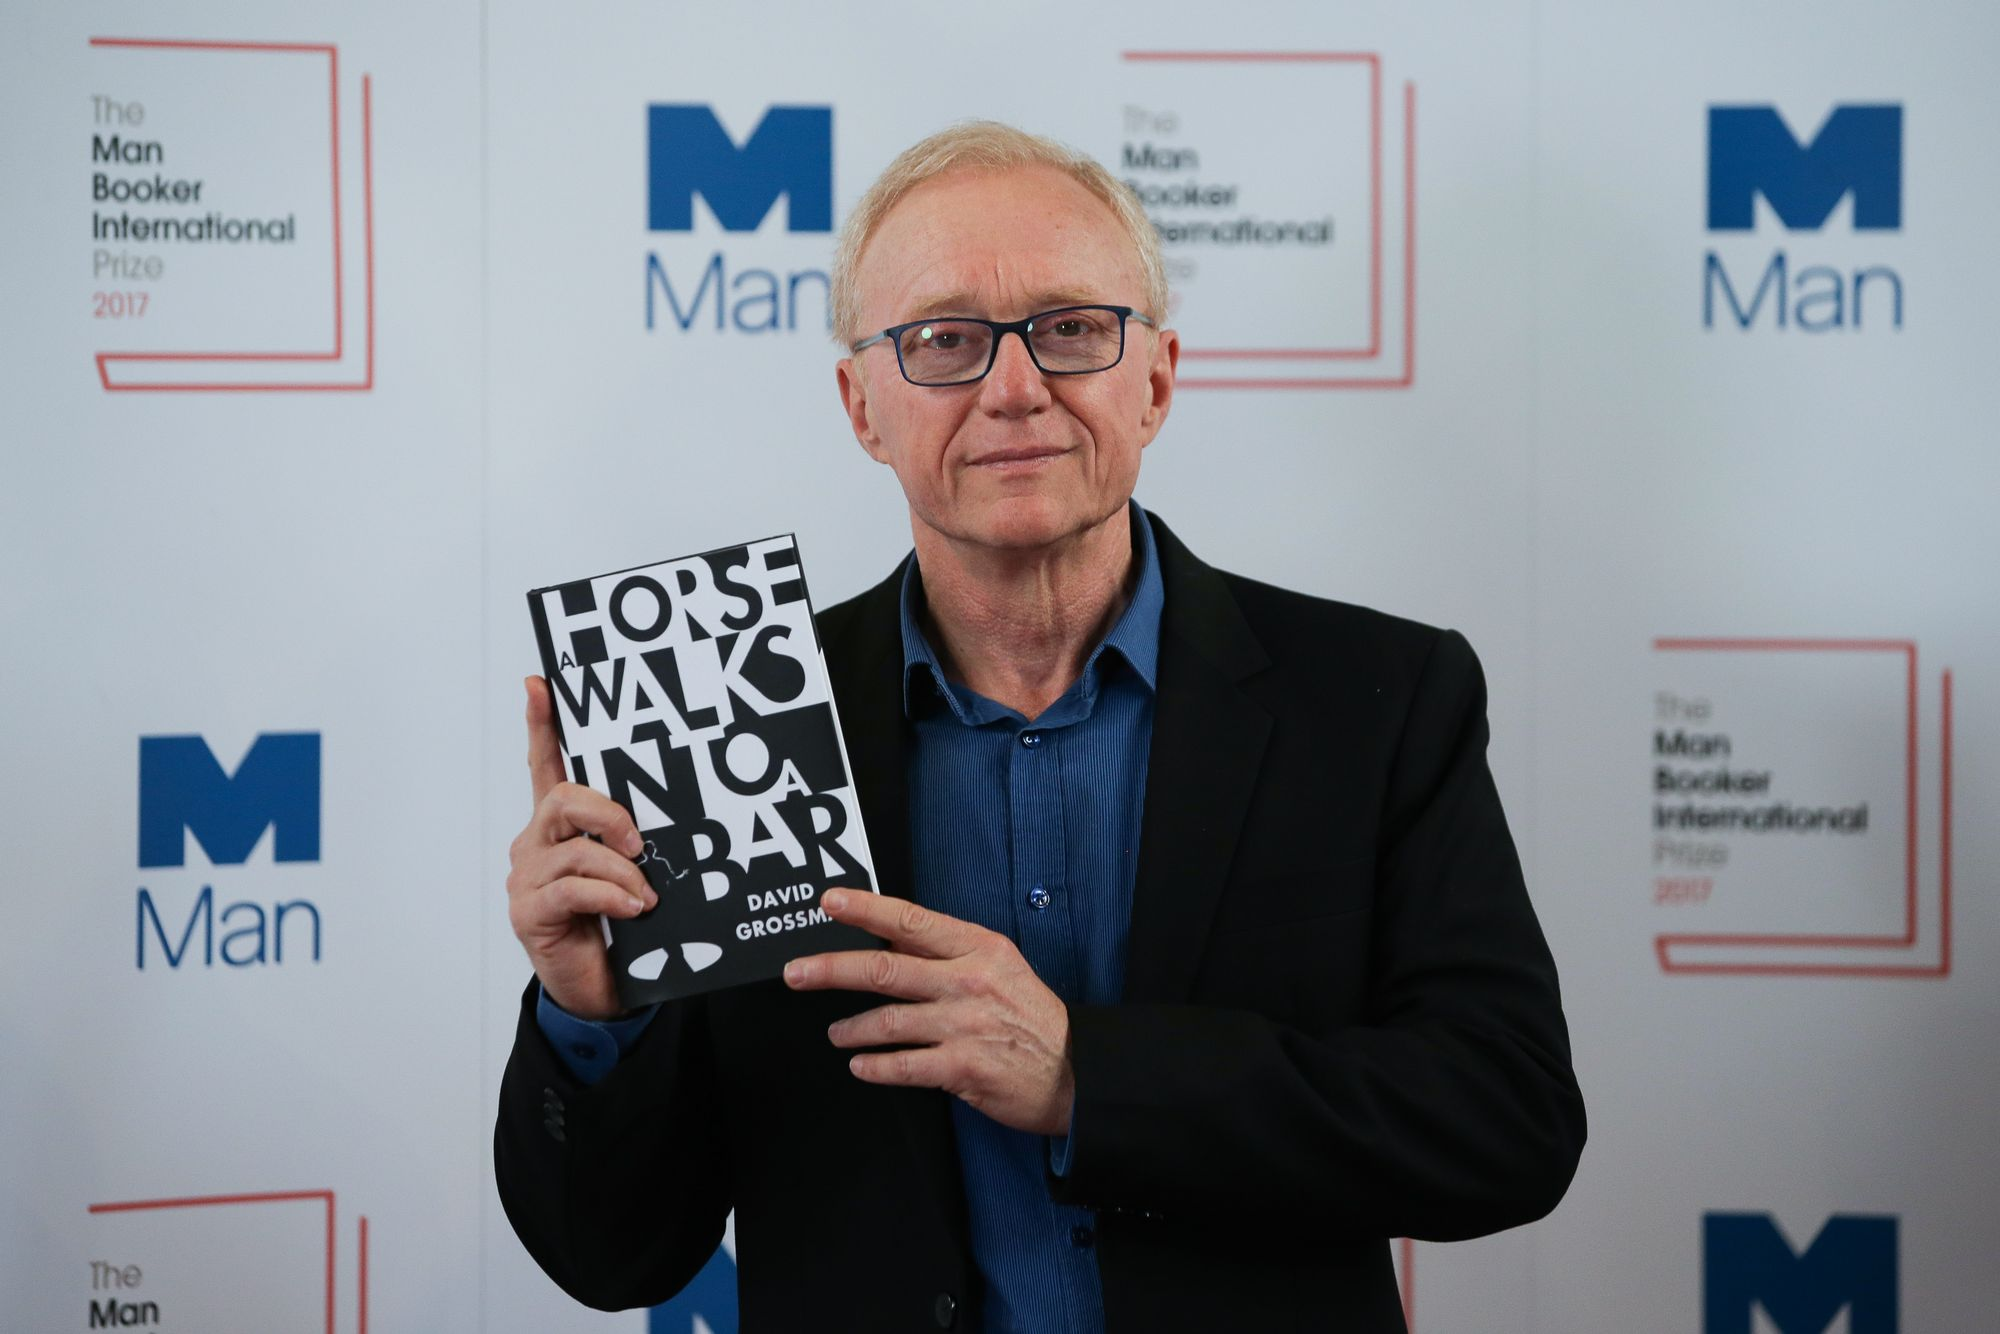 L'auteur israélien David Grossman, lauréat du prestigieux Man Booker International Prize.